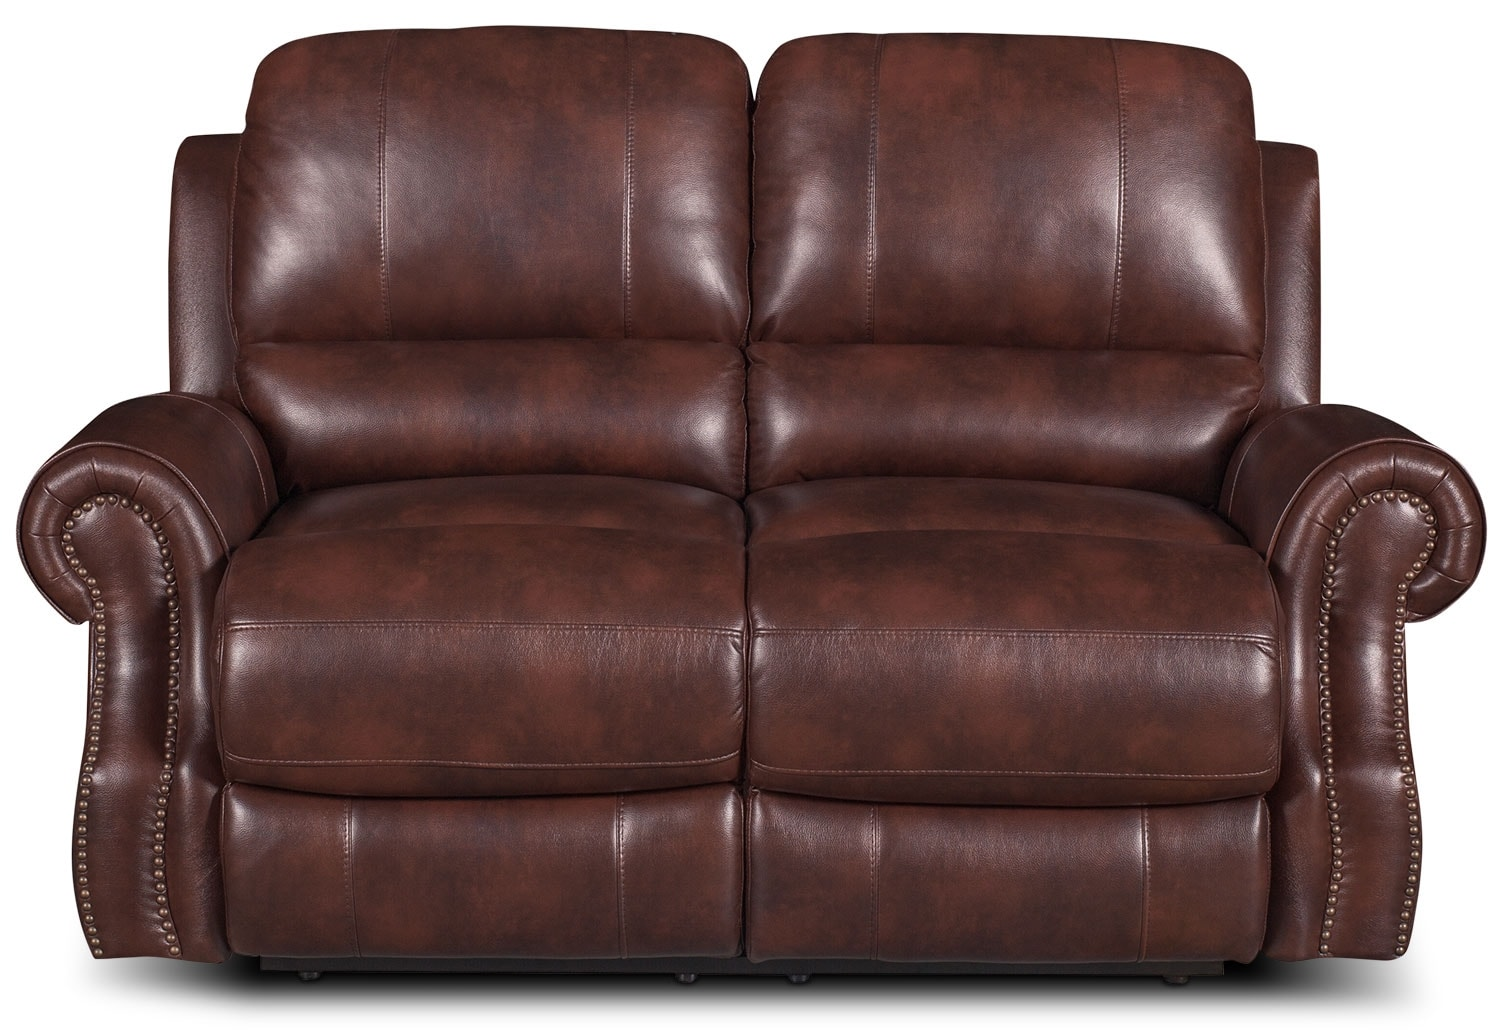 Magnum Leather-Look Fabric Reclining Loveseat – Brown